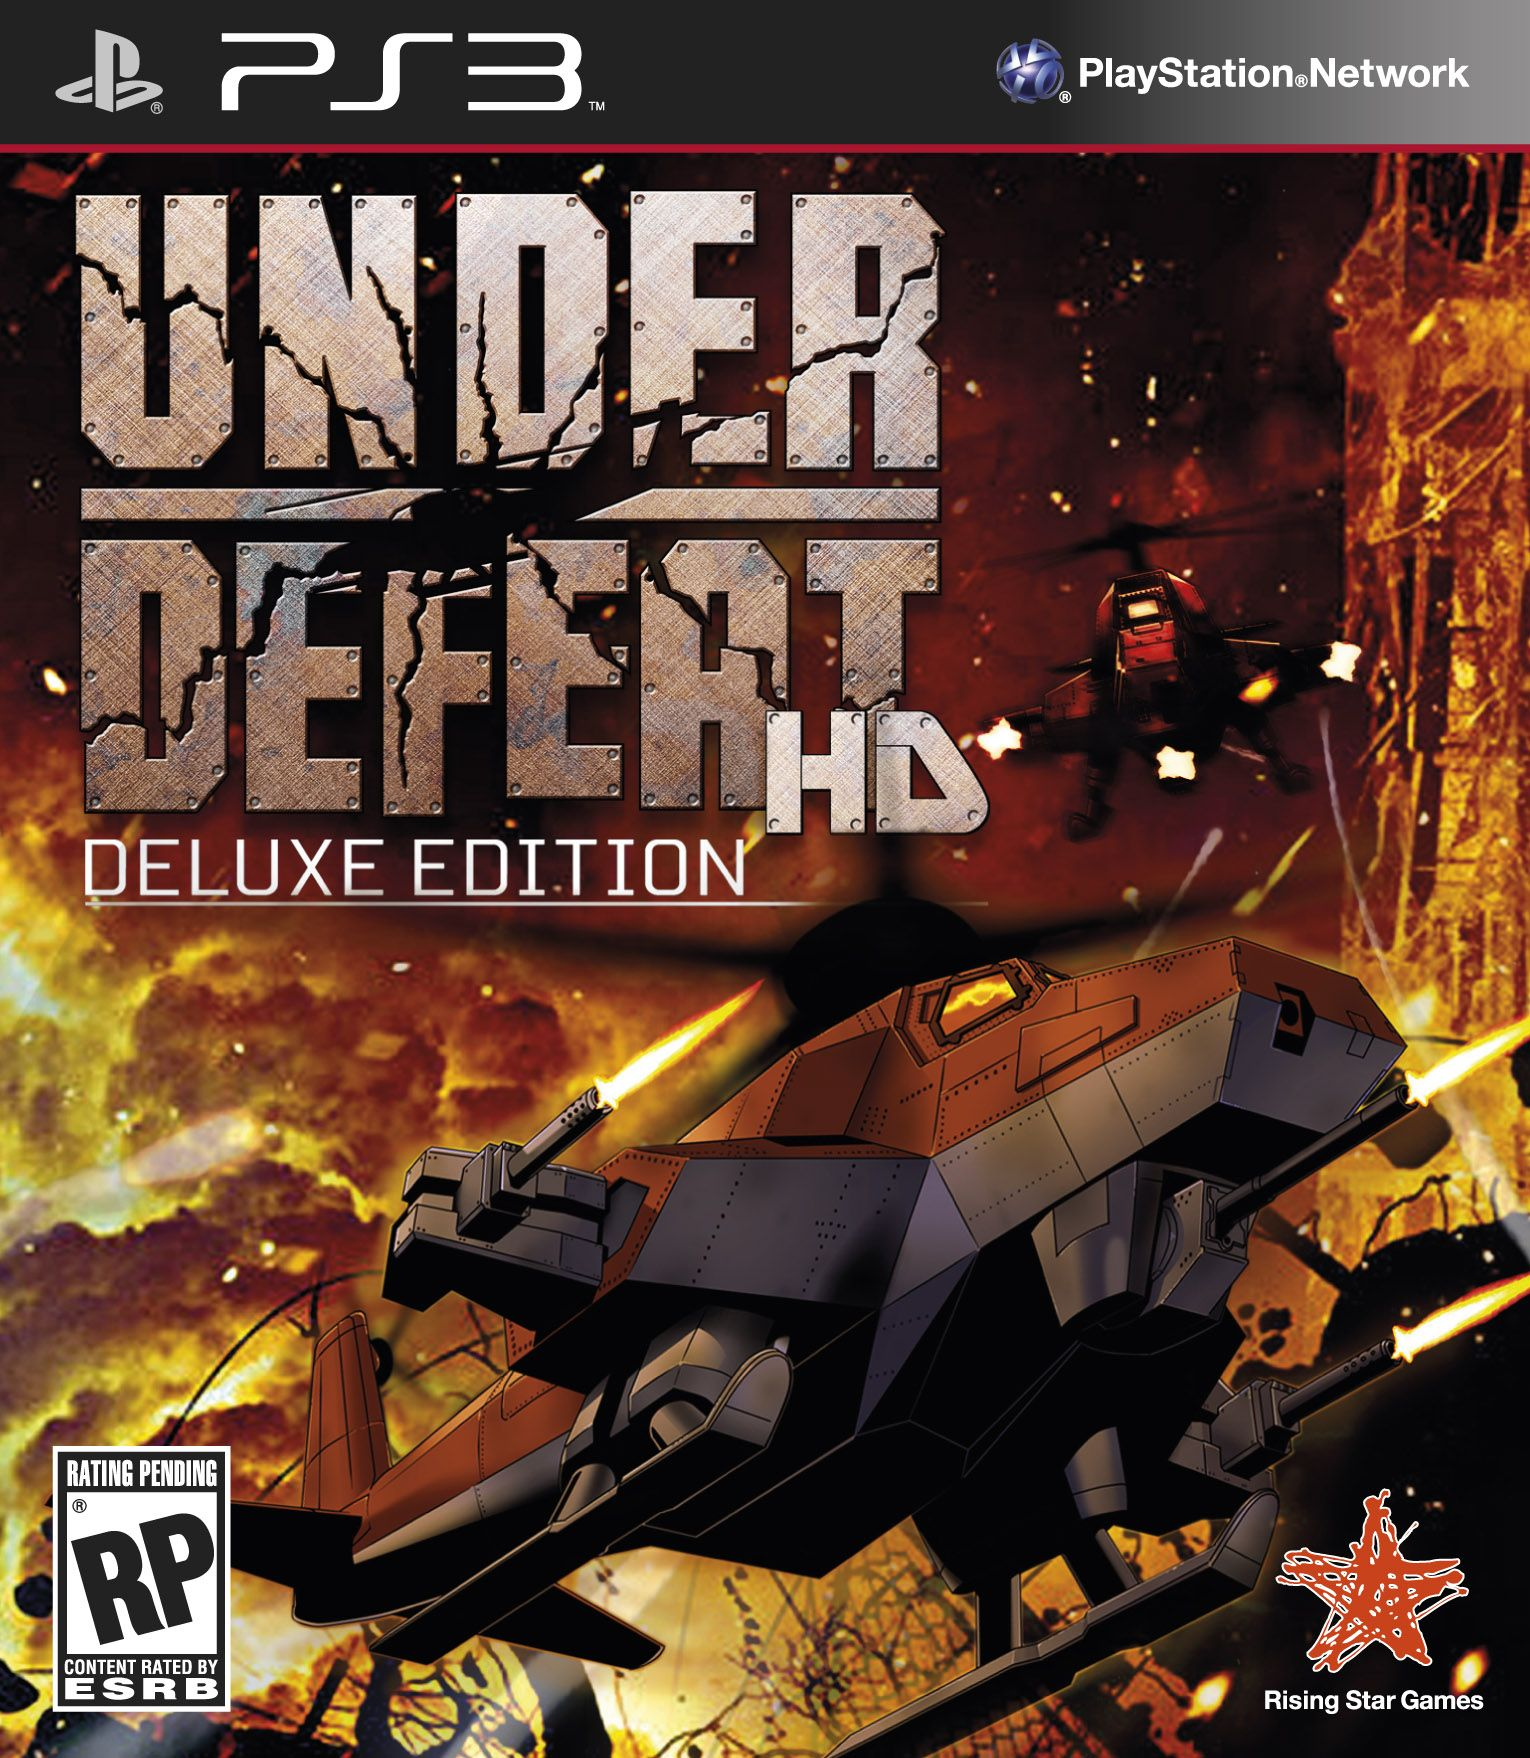 Under Defeat HD Deluxe Edition Comprar Buy helicopteros videojuego